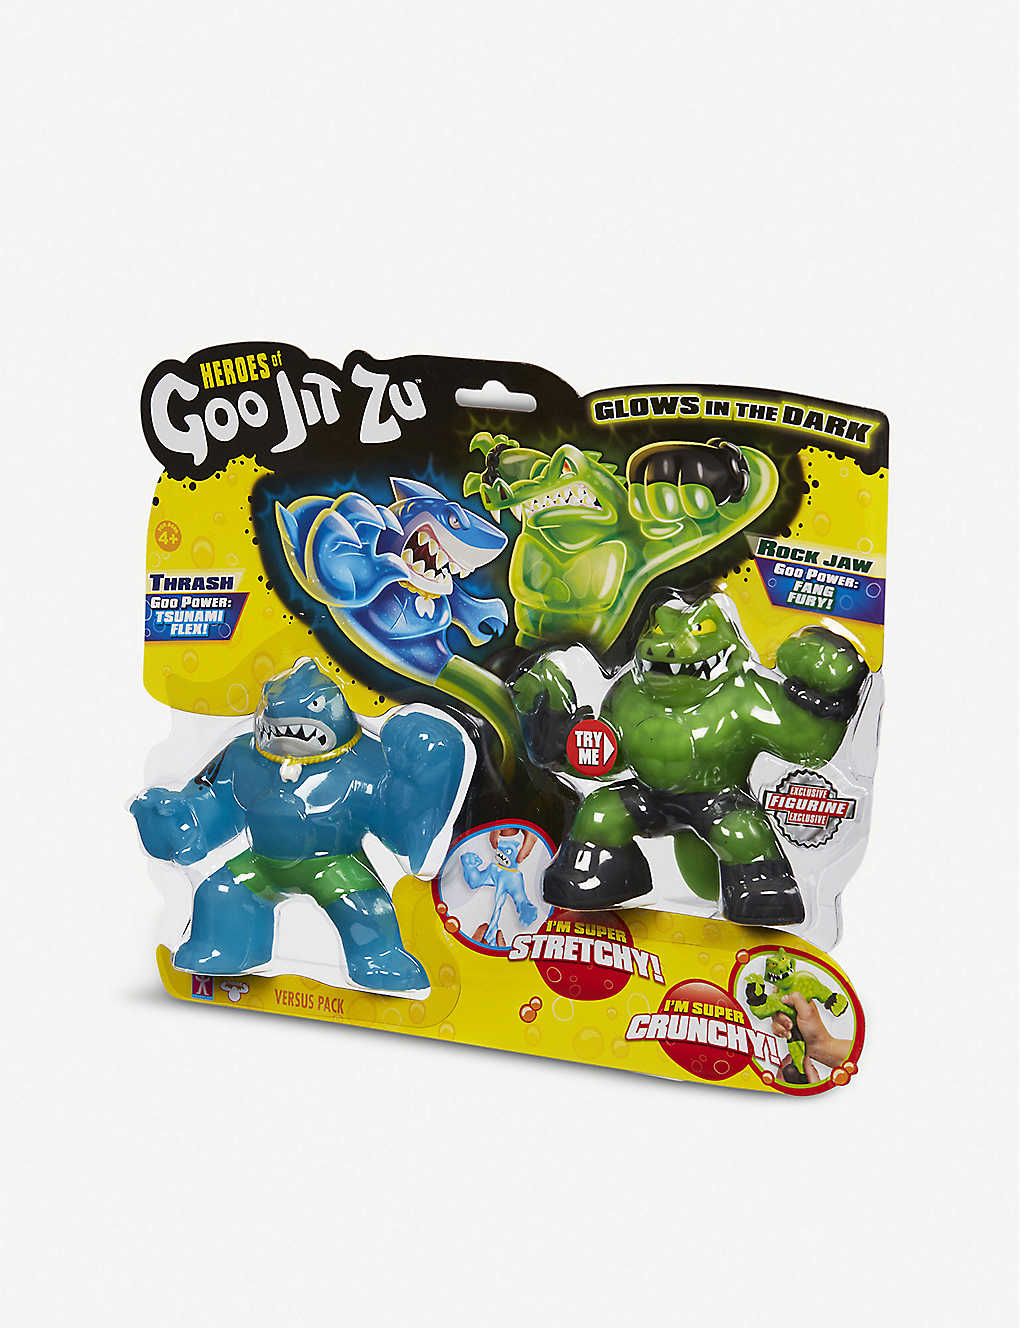 POCKET MONEY: Heroes of Goo Jit Zu Versus pack